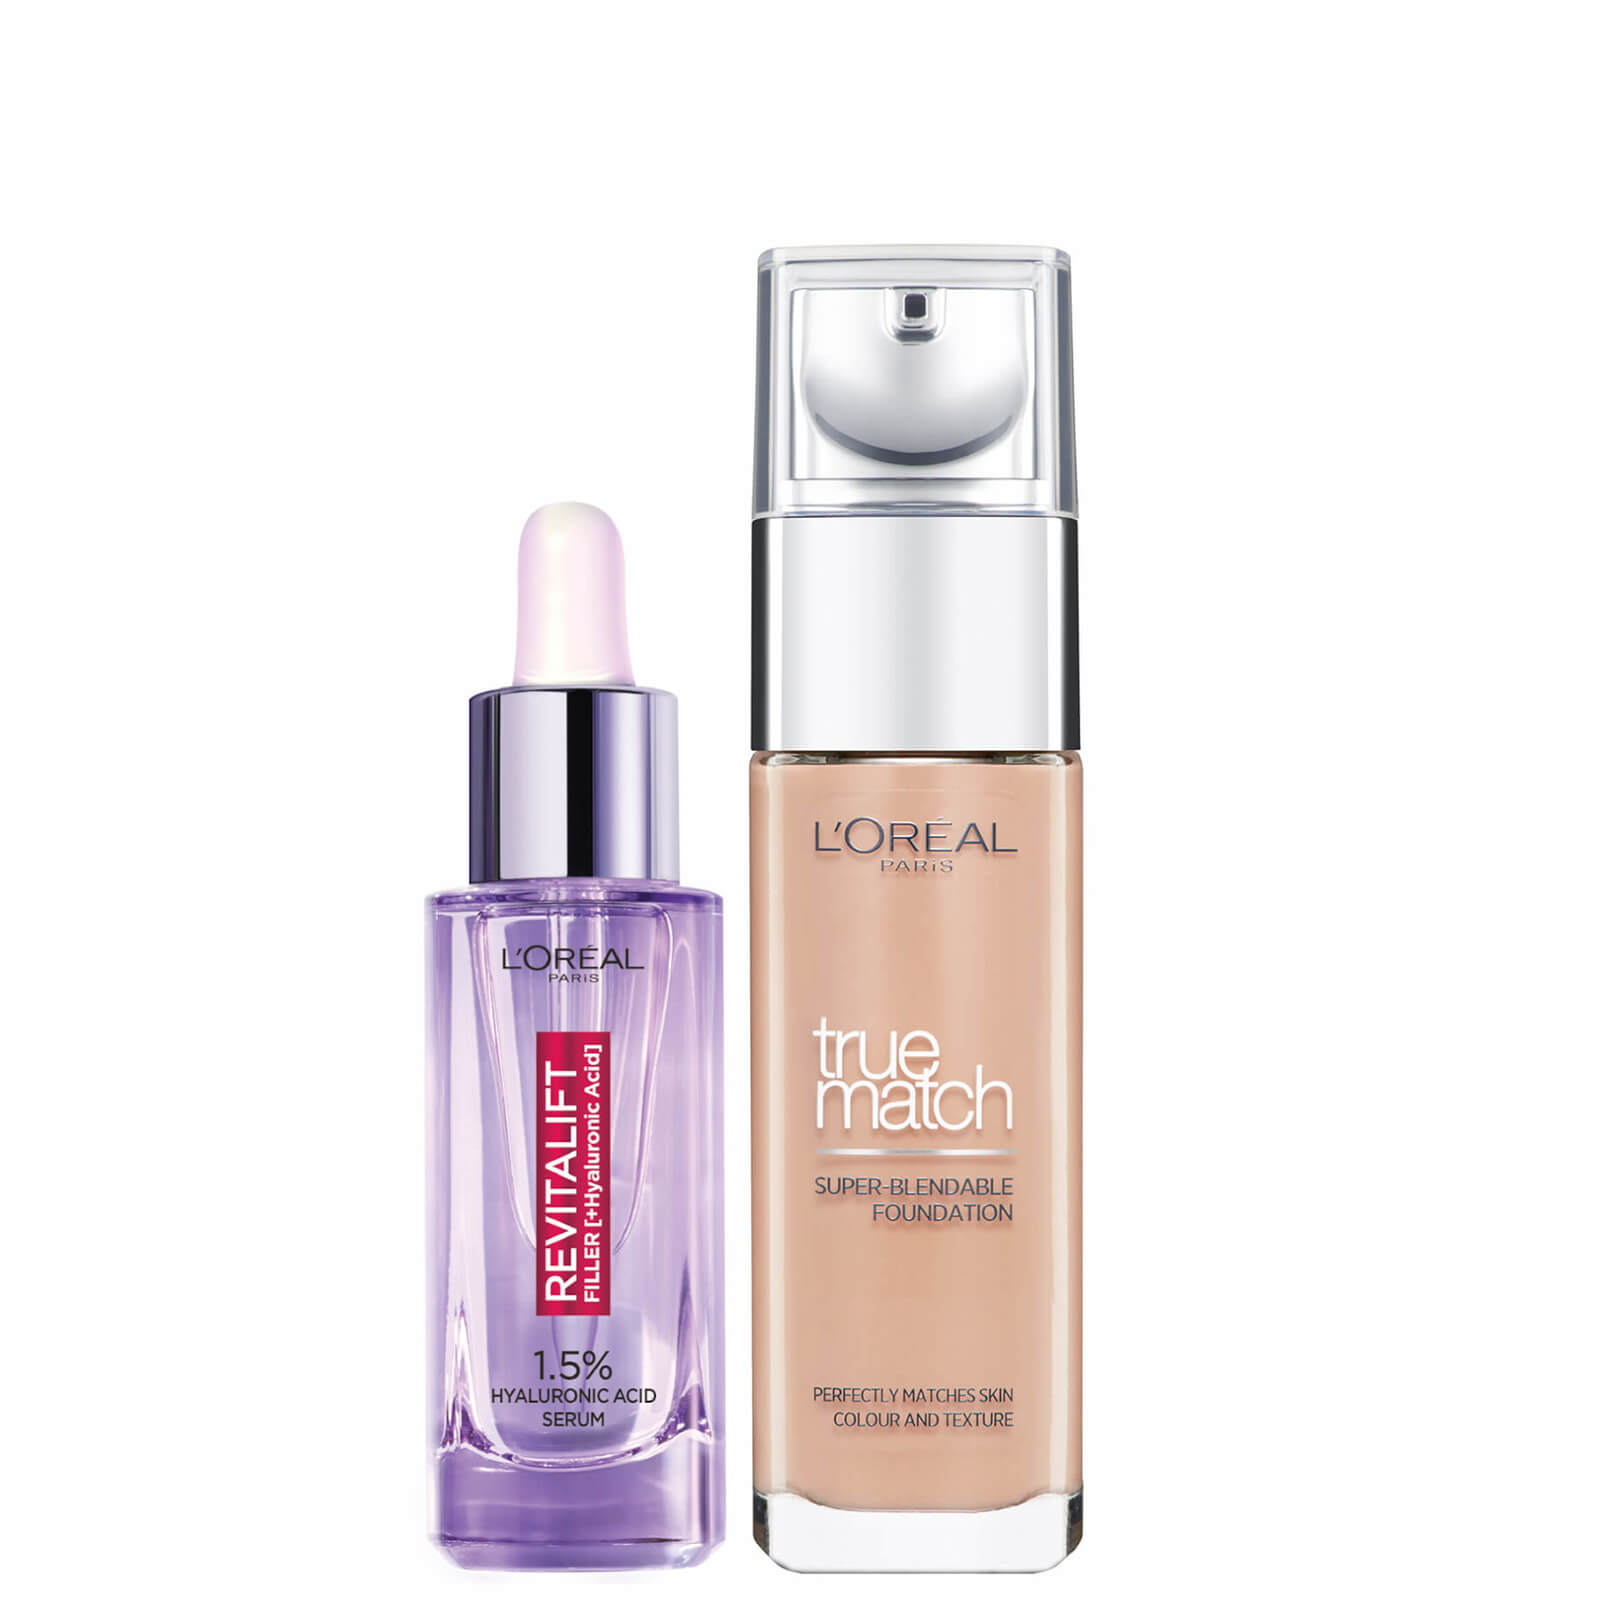 L'Oreal Paris Hyaluronic Acid Filler Serum and True Match Hyaluronic Acid Foundation Duo (Various Shades) - 6N Honey